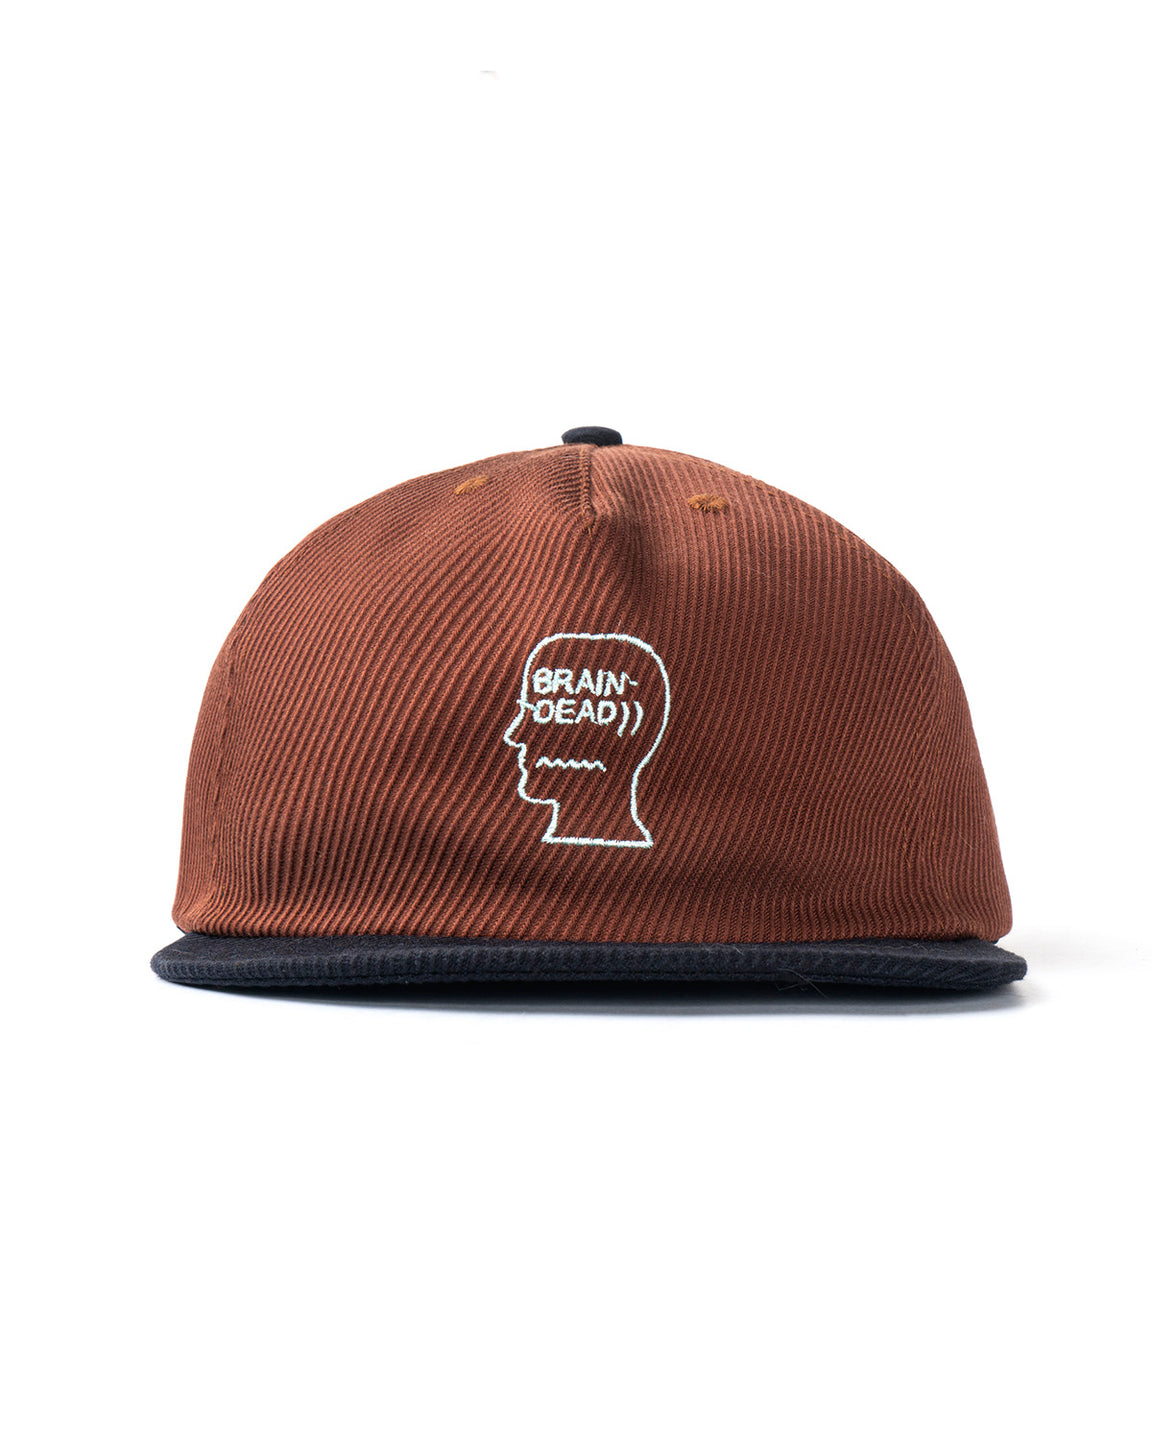 Bias Cut Twill Cord Logo Hat - Terracotta